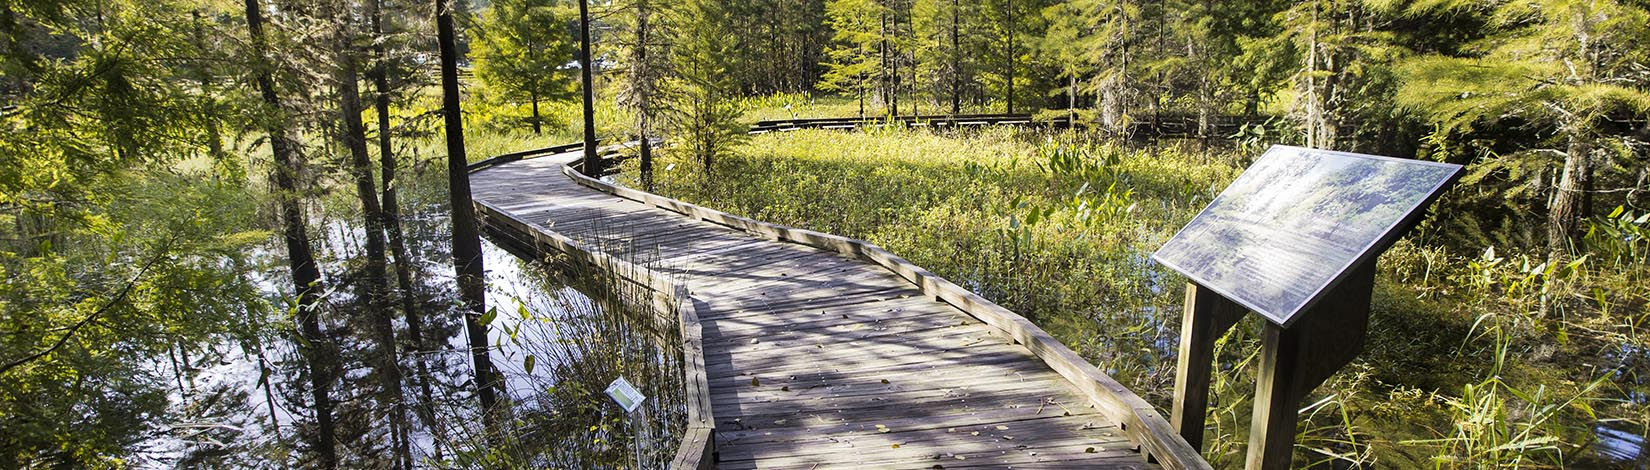 wooden walkway through cypress swamp